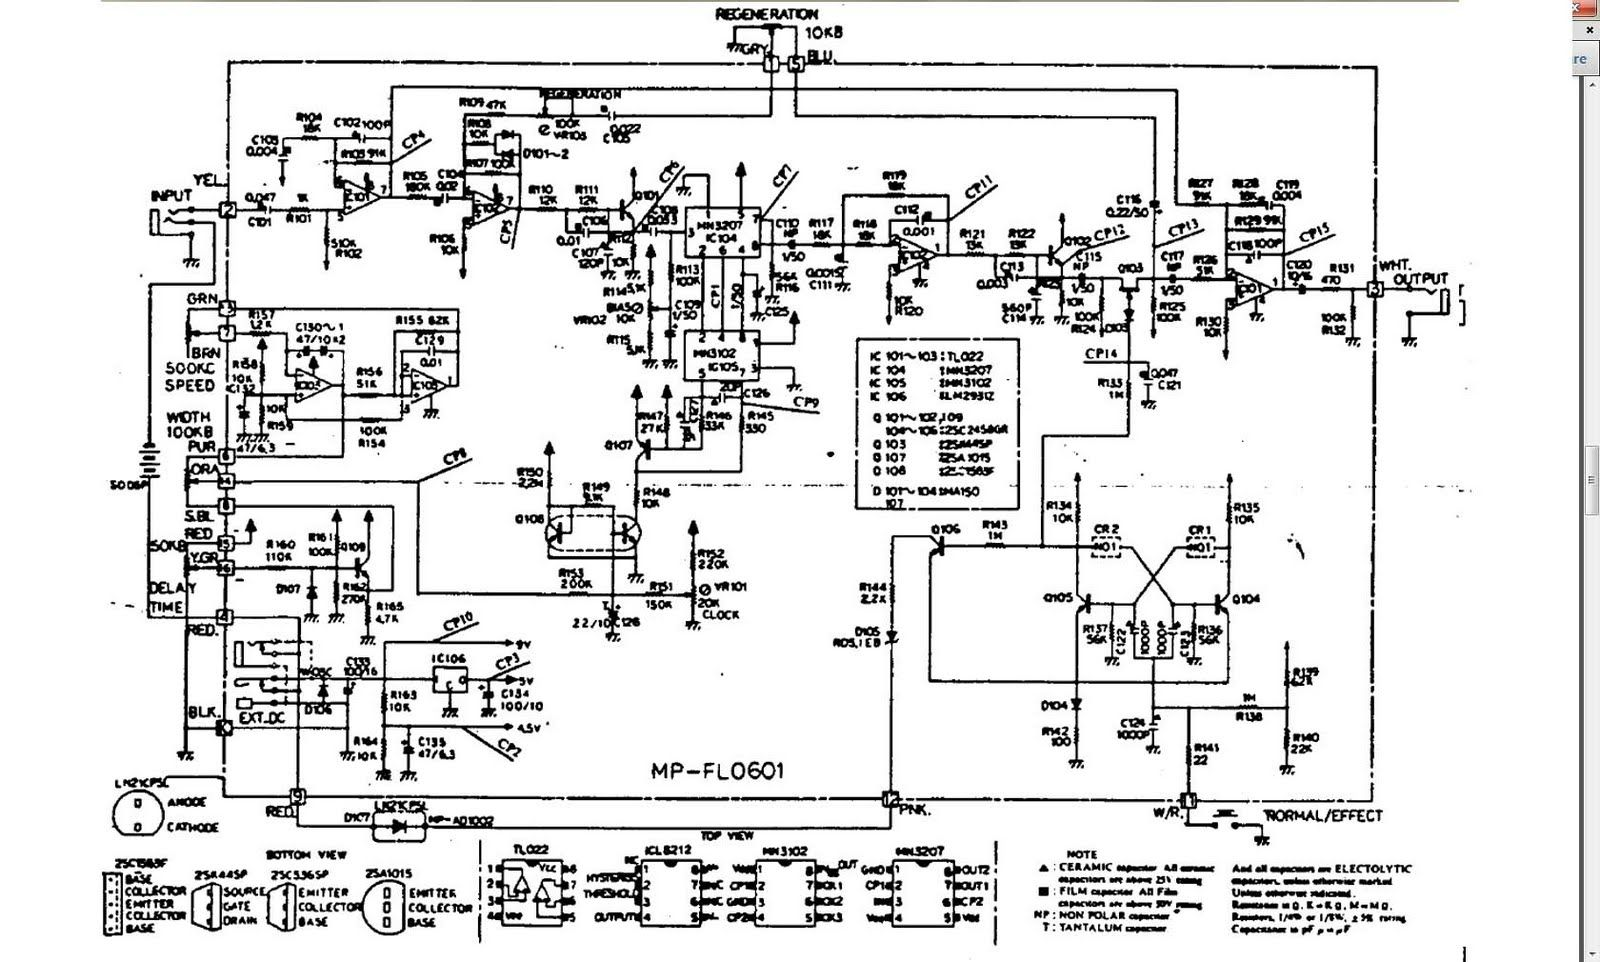 guitar flanger schematics yahoo image search results [ 1600 x 962 Pixel ]